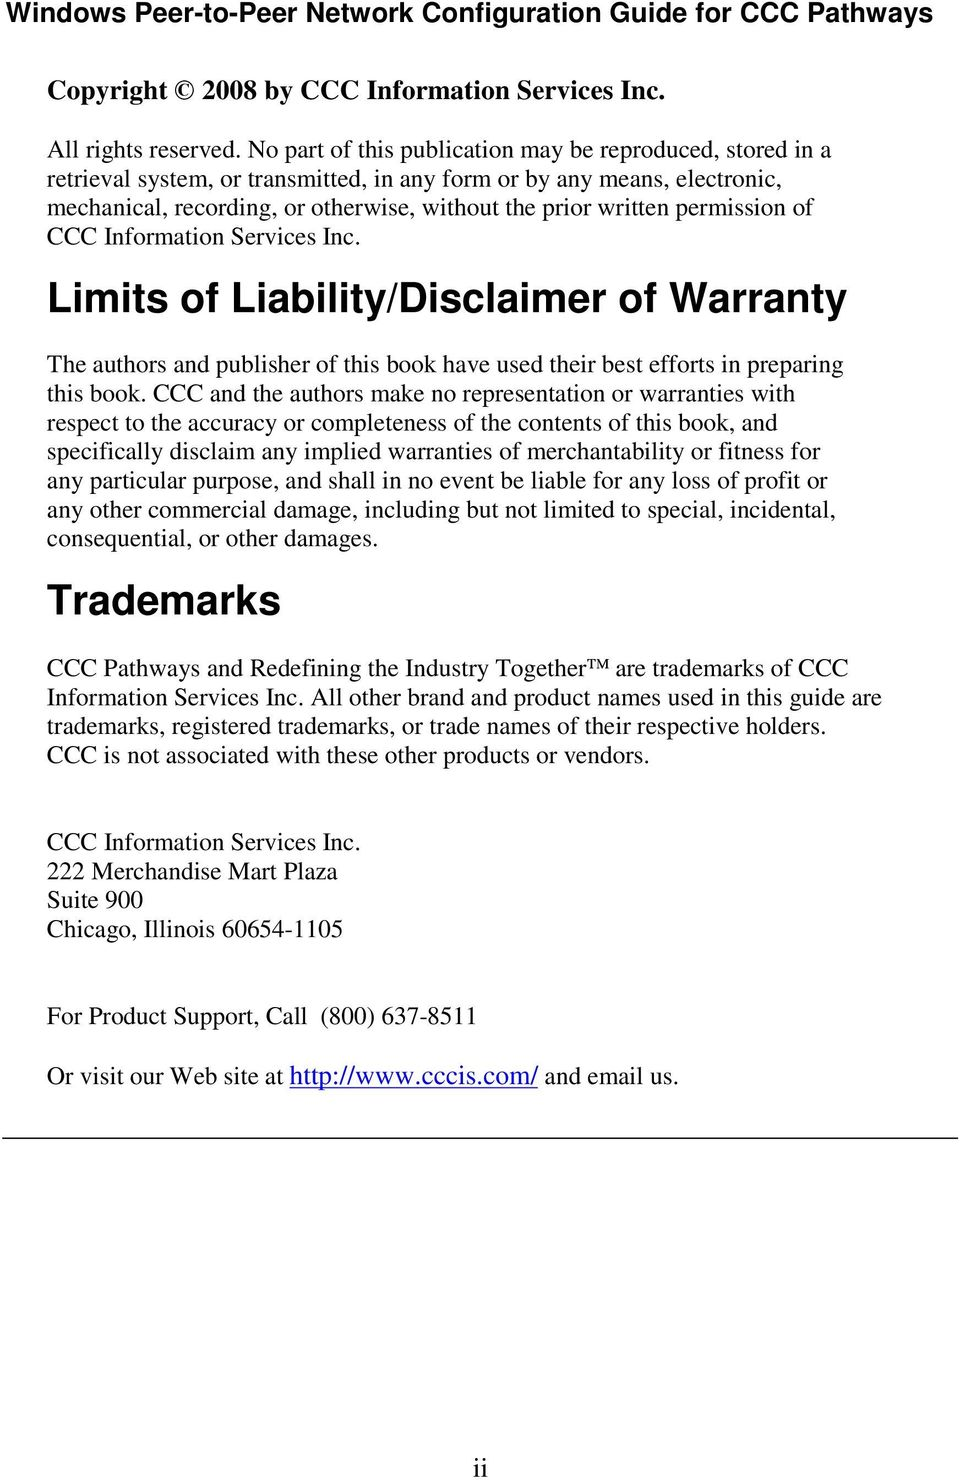 permission of CCC Information Services Inc. Limits of Liability/Disclaimer of Warranty The authors and publisher of this book have used their best efforts in preparing this book.